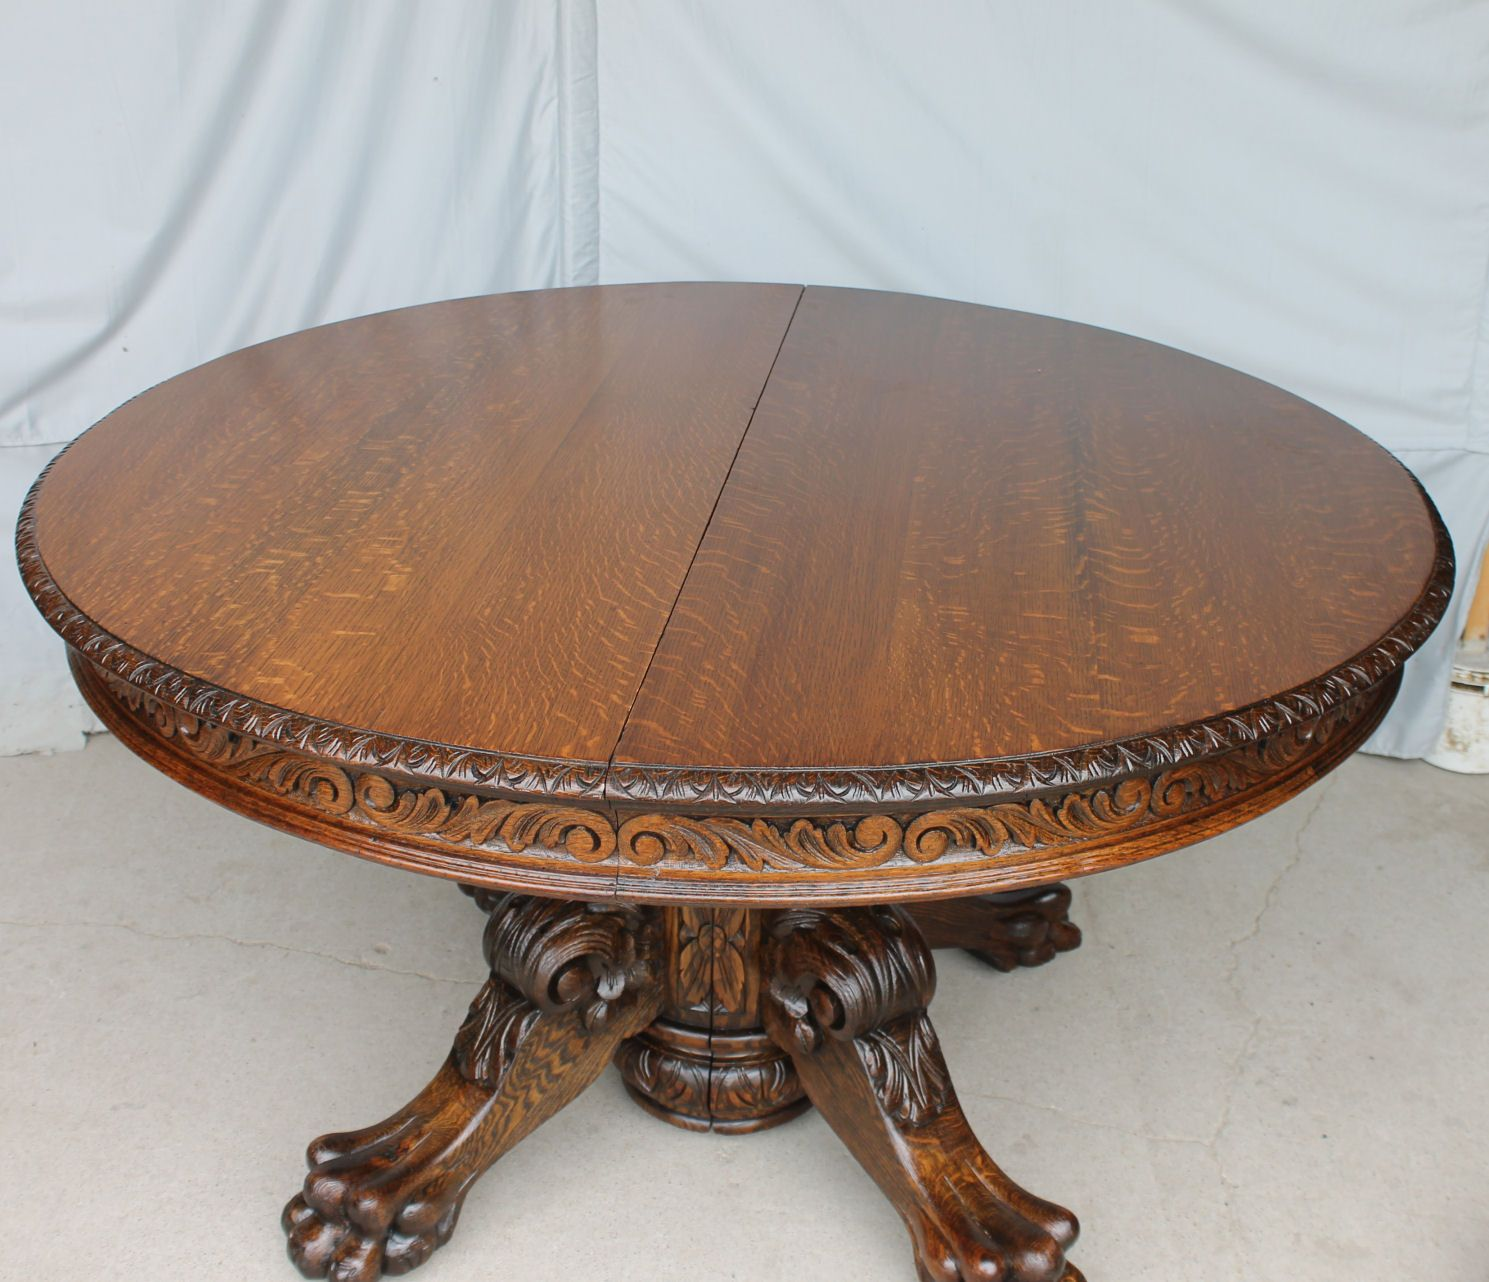 Antique Round Victorian Carved Oak Dining Table 54 Inches